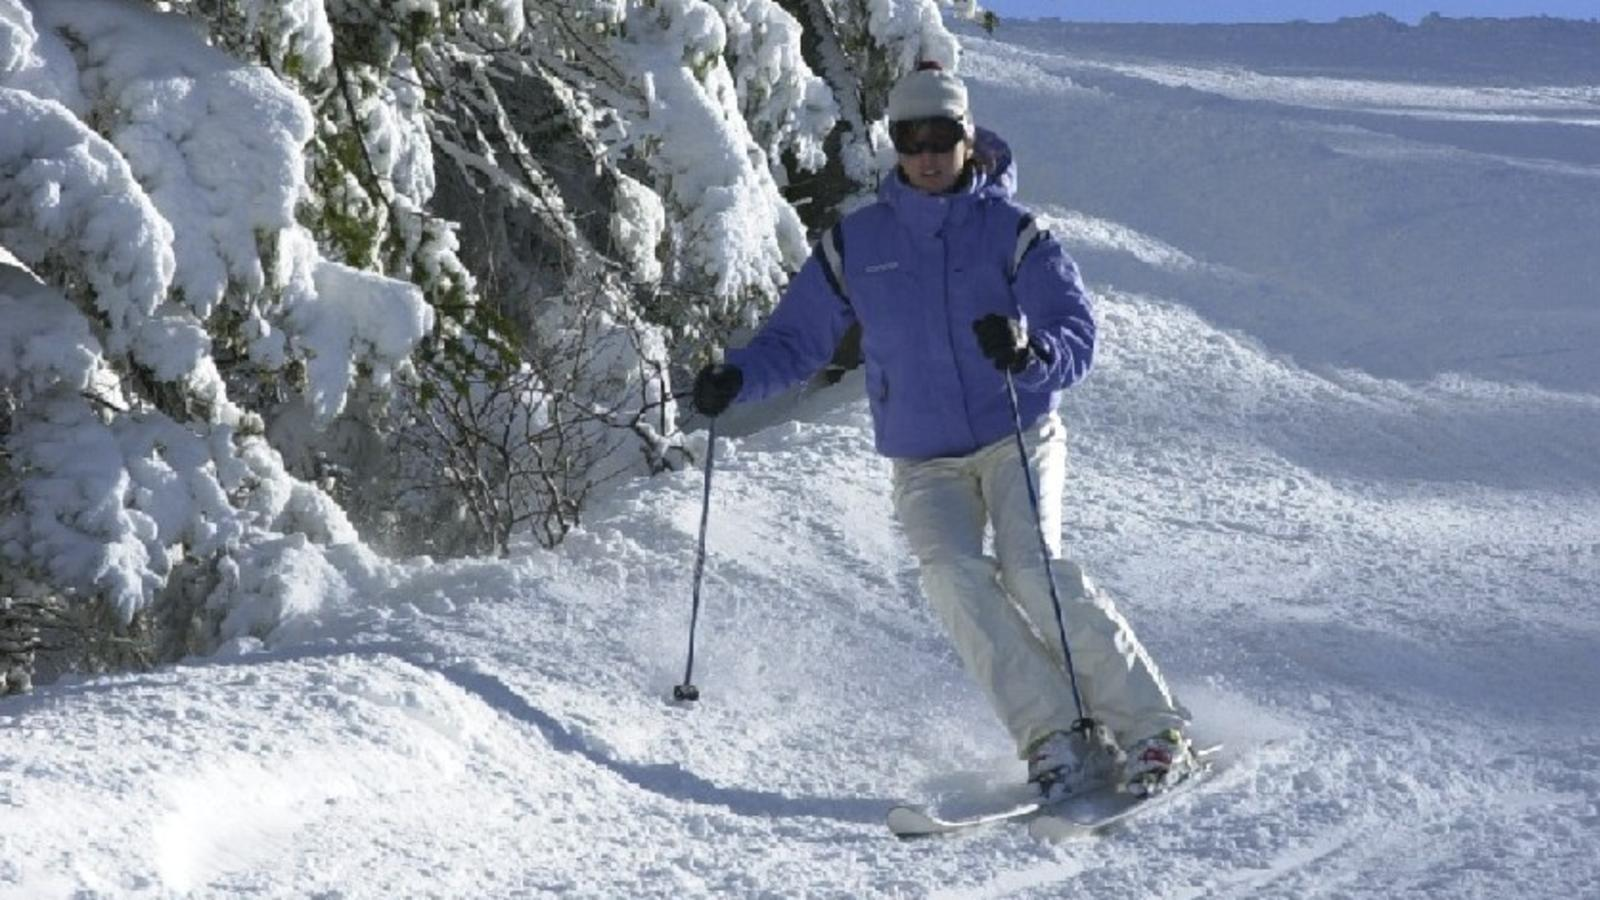 killington hindu personals Killington opened 59 years ago on december 13, 1958 the resort expanded in the 1960s at a pace well above industry standards many new trails were created and smith had beginner trails accessible from every lift.